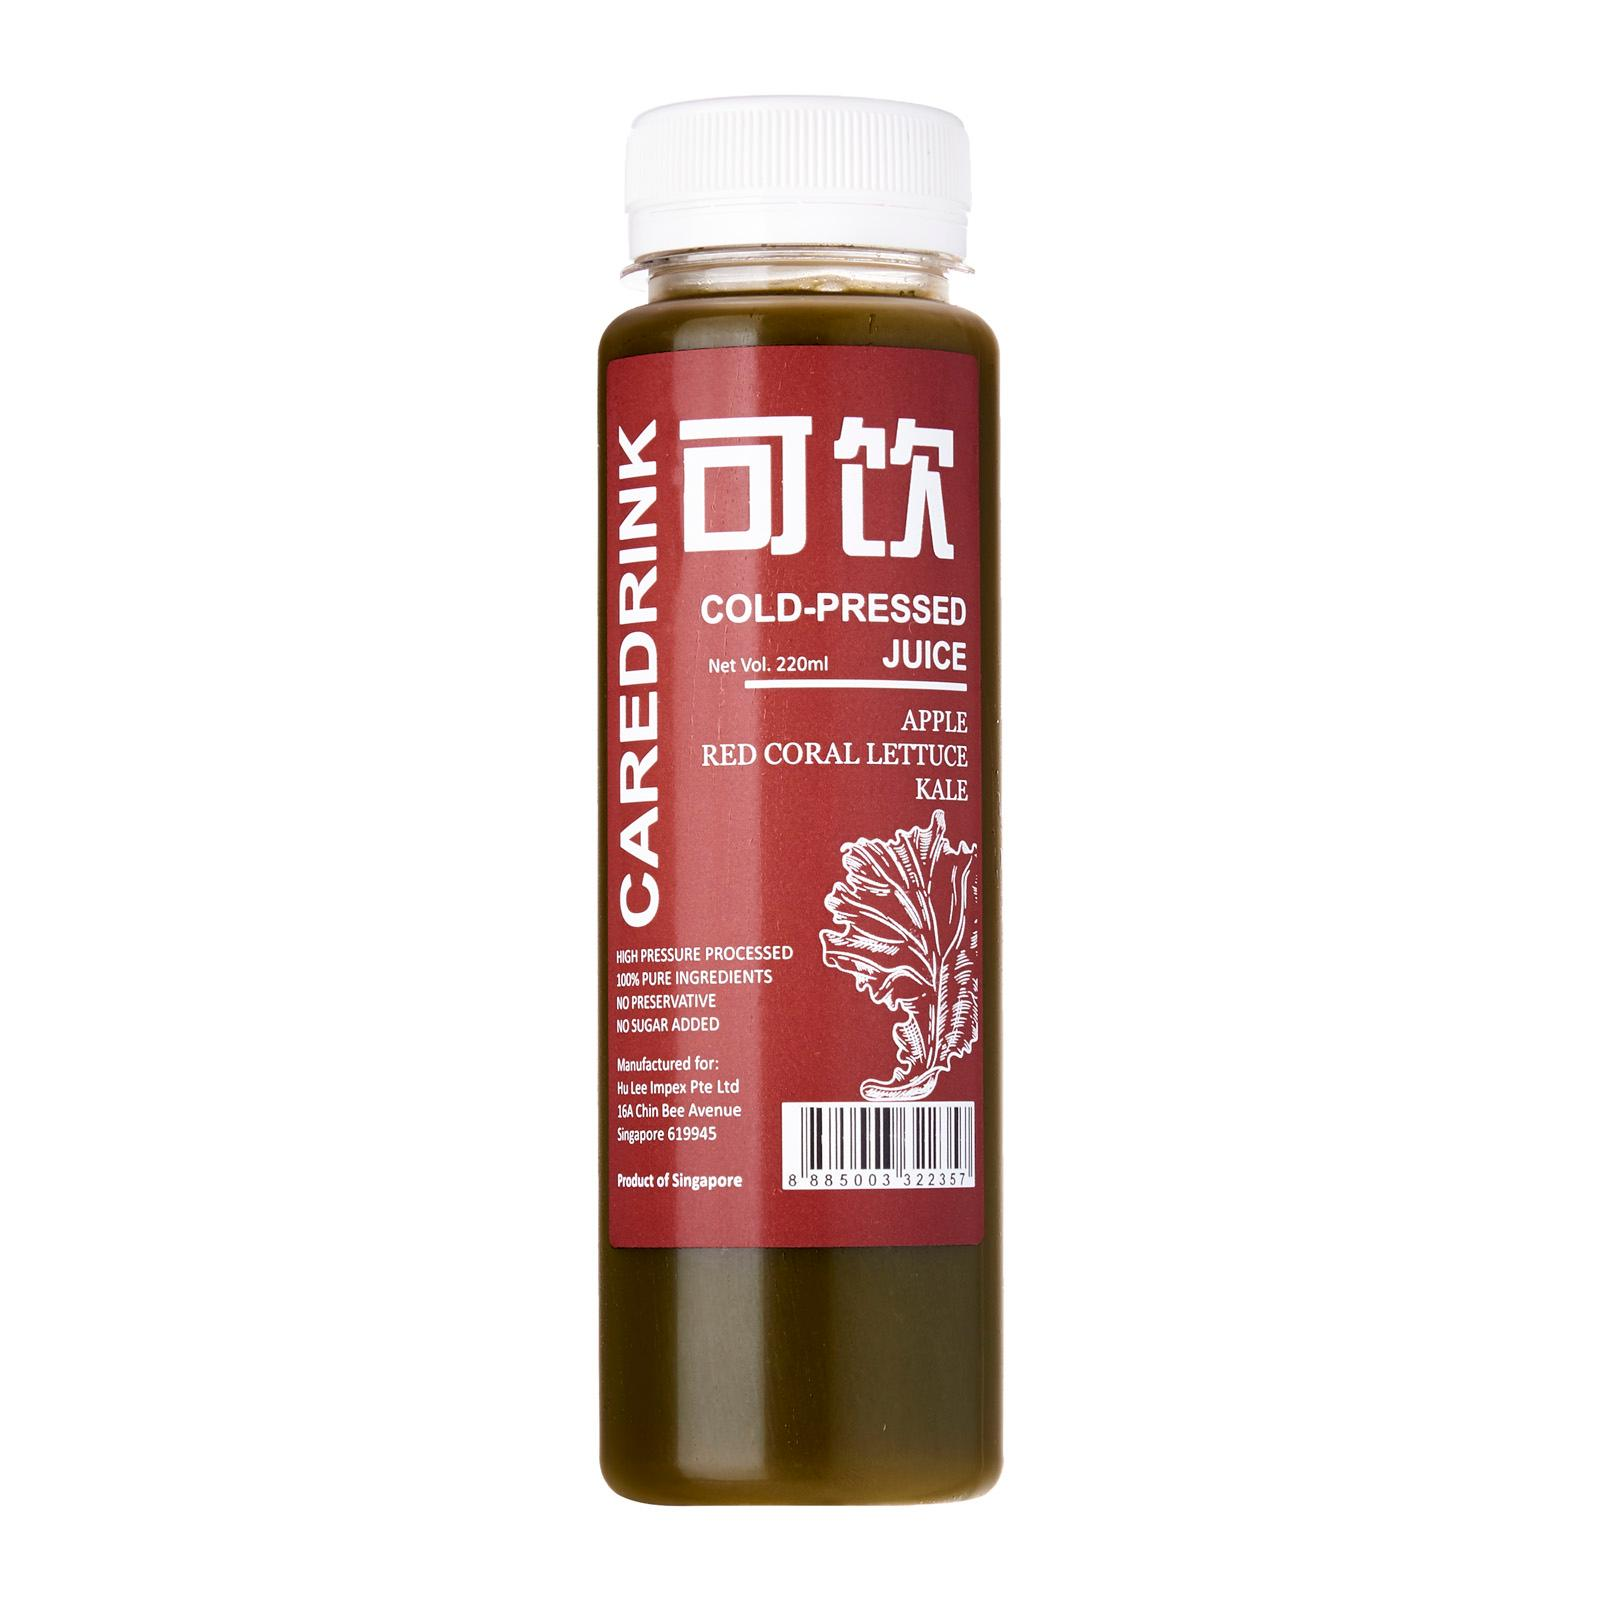 Caredrink Cold-pressed Juice - Apple Red Coral Lettuce Kale